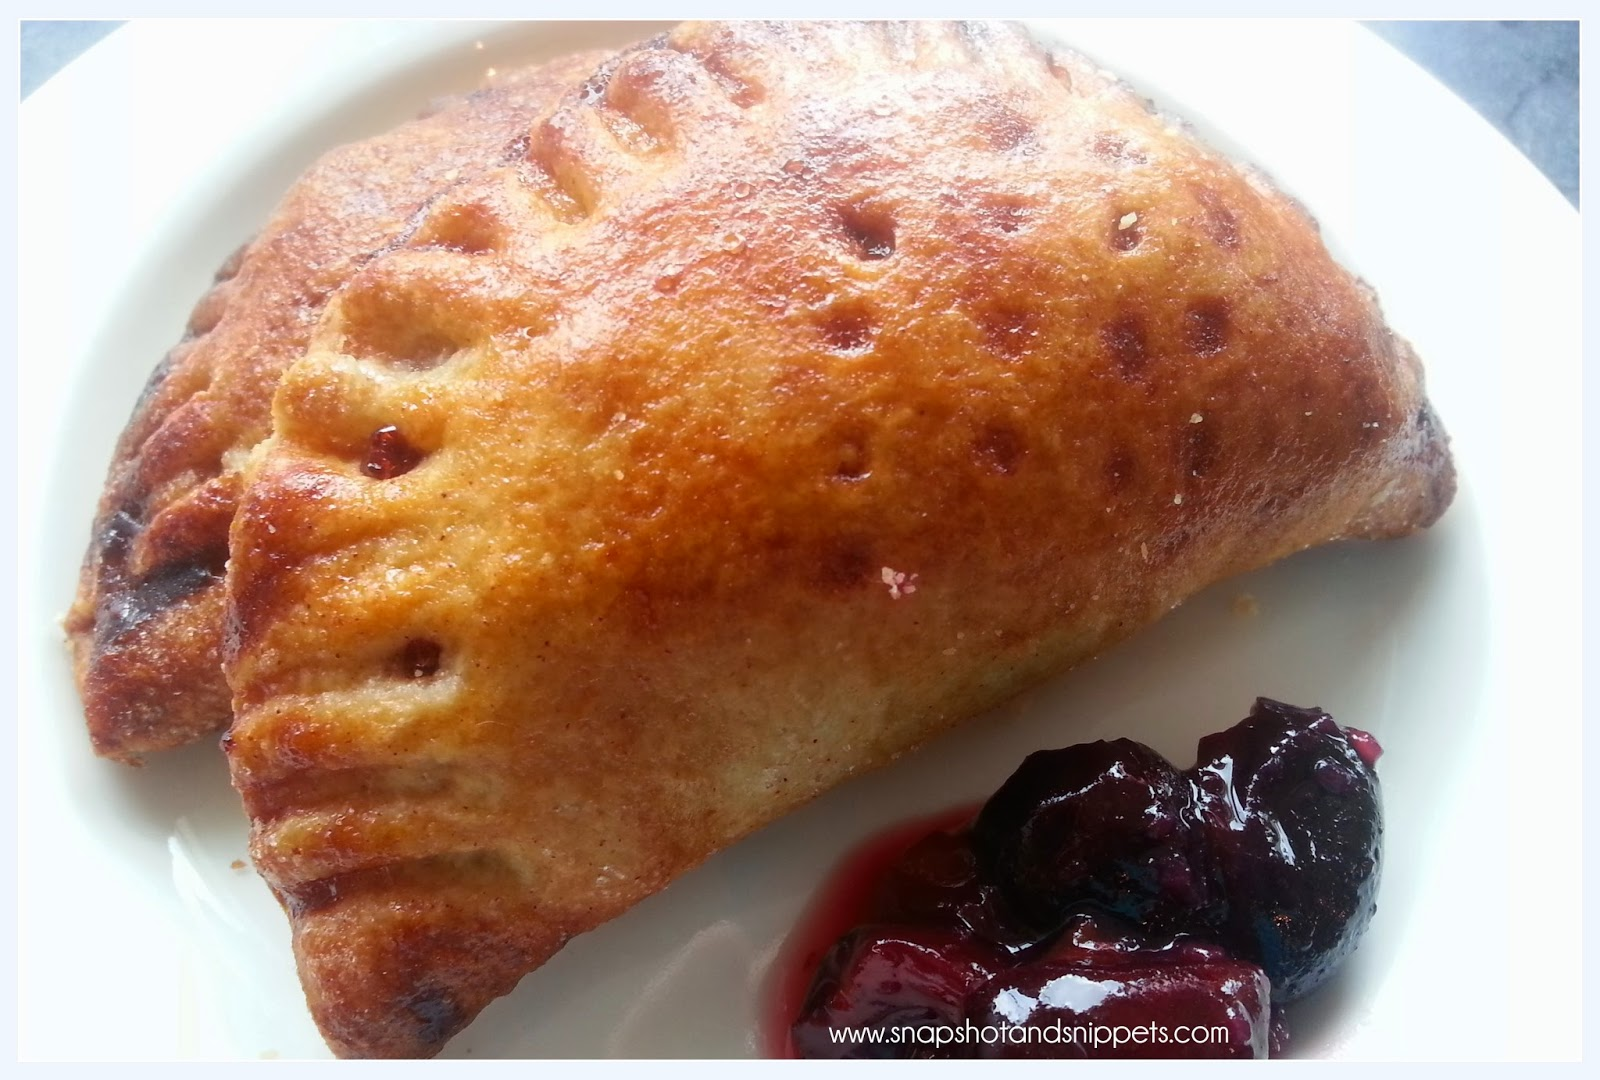 Cherry Hand Pie recipe